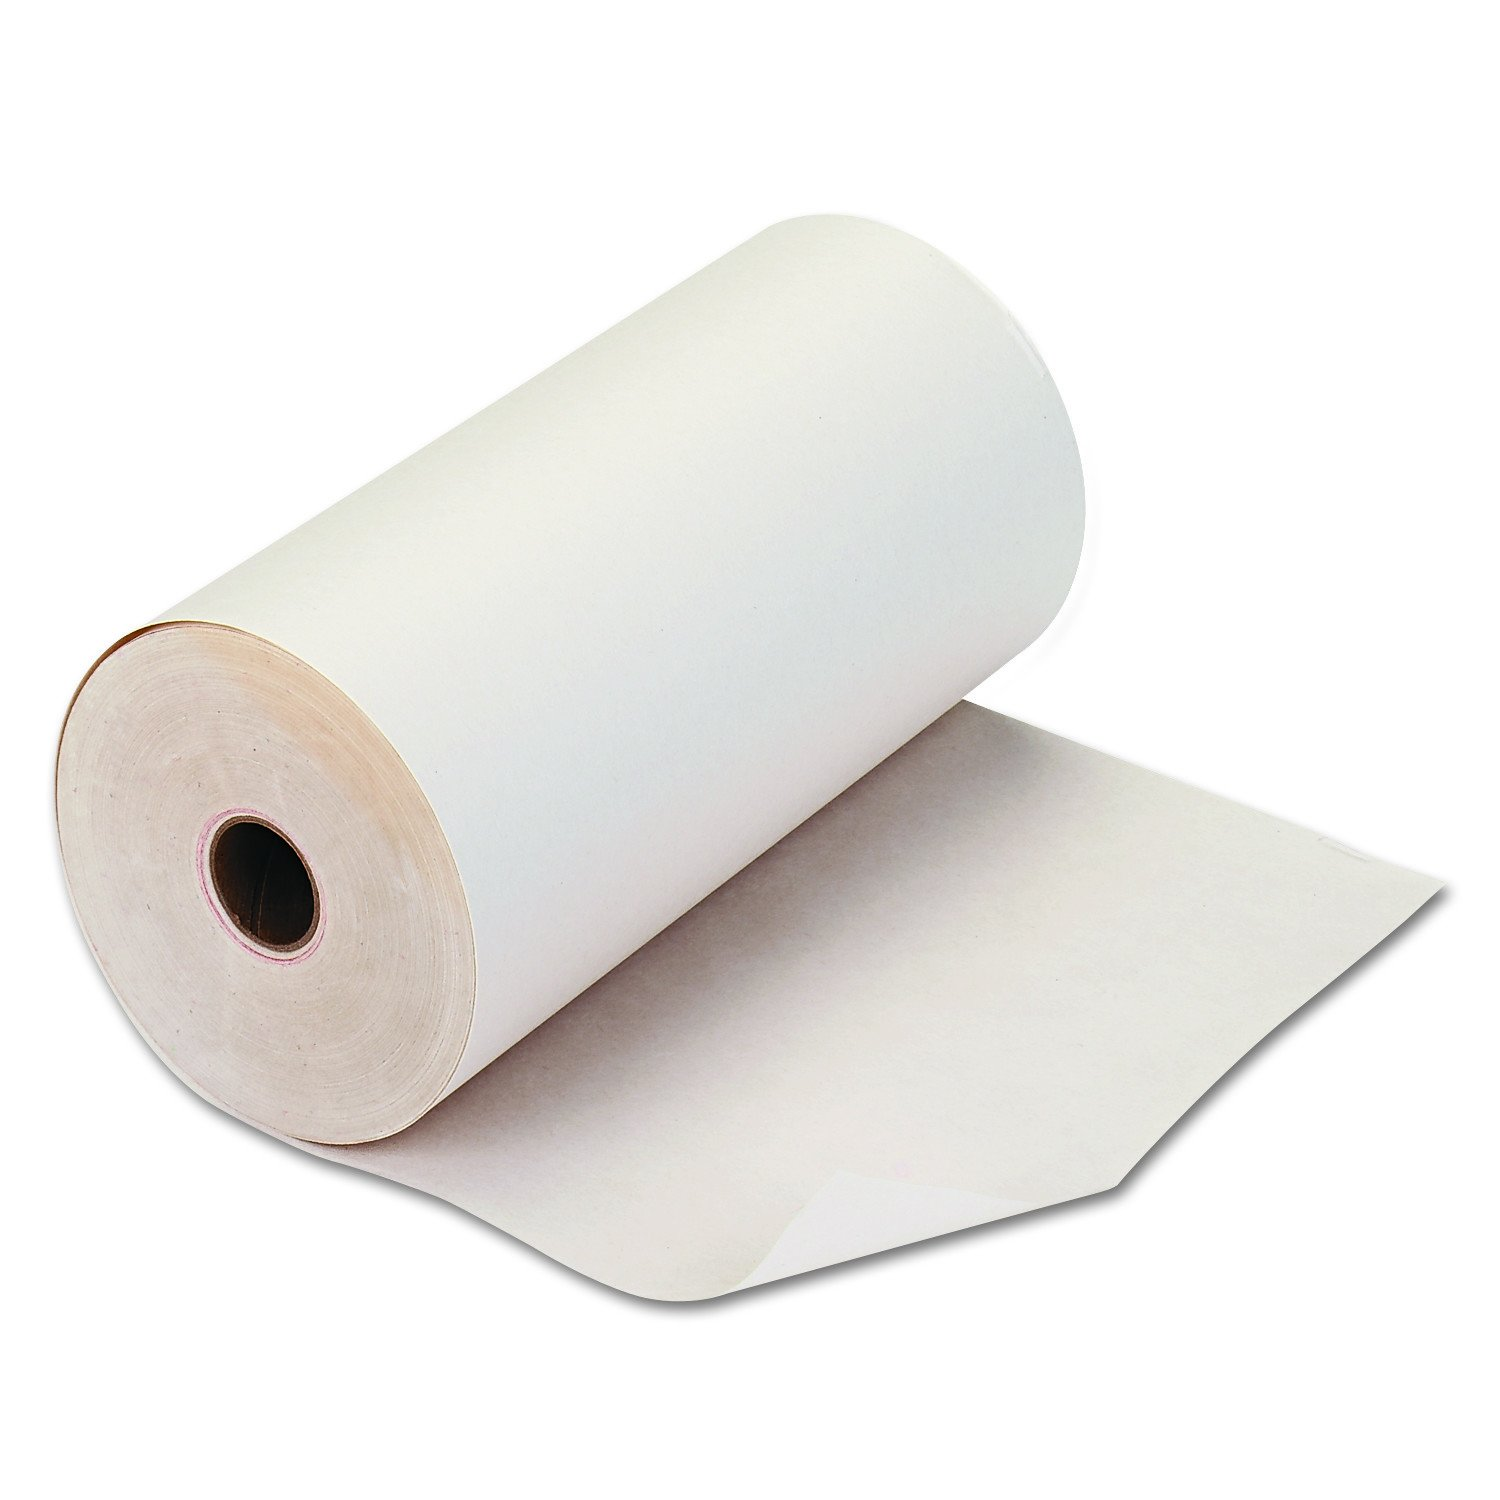 PM Company Teleprinter Roll, 8-7/16 Inch Width, 235 Feet Length, White, 1 per Pack (06210)